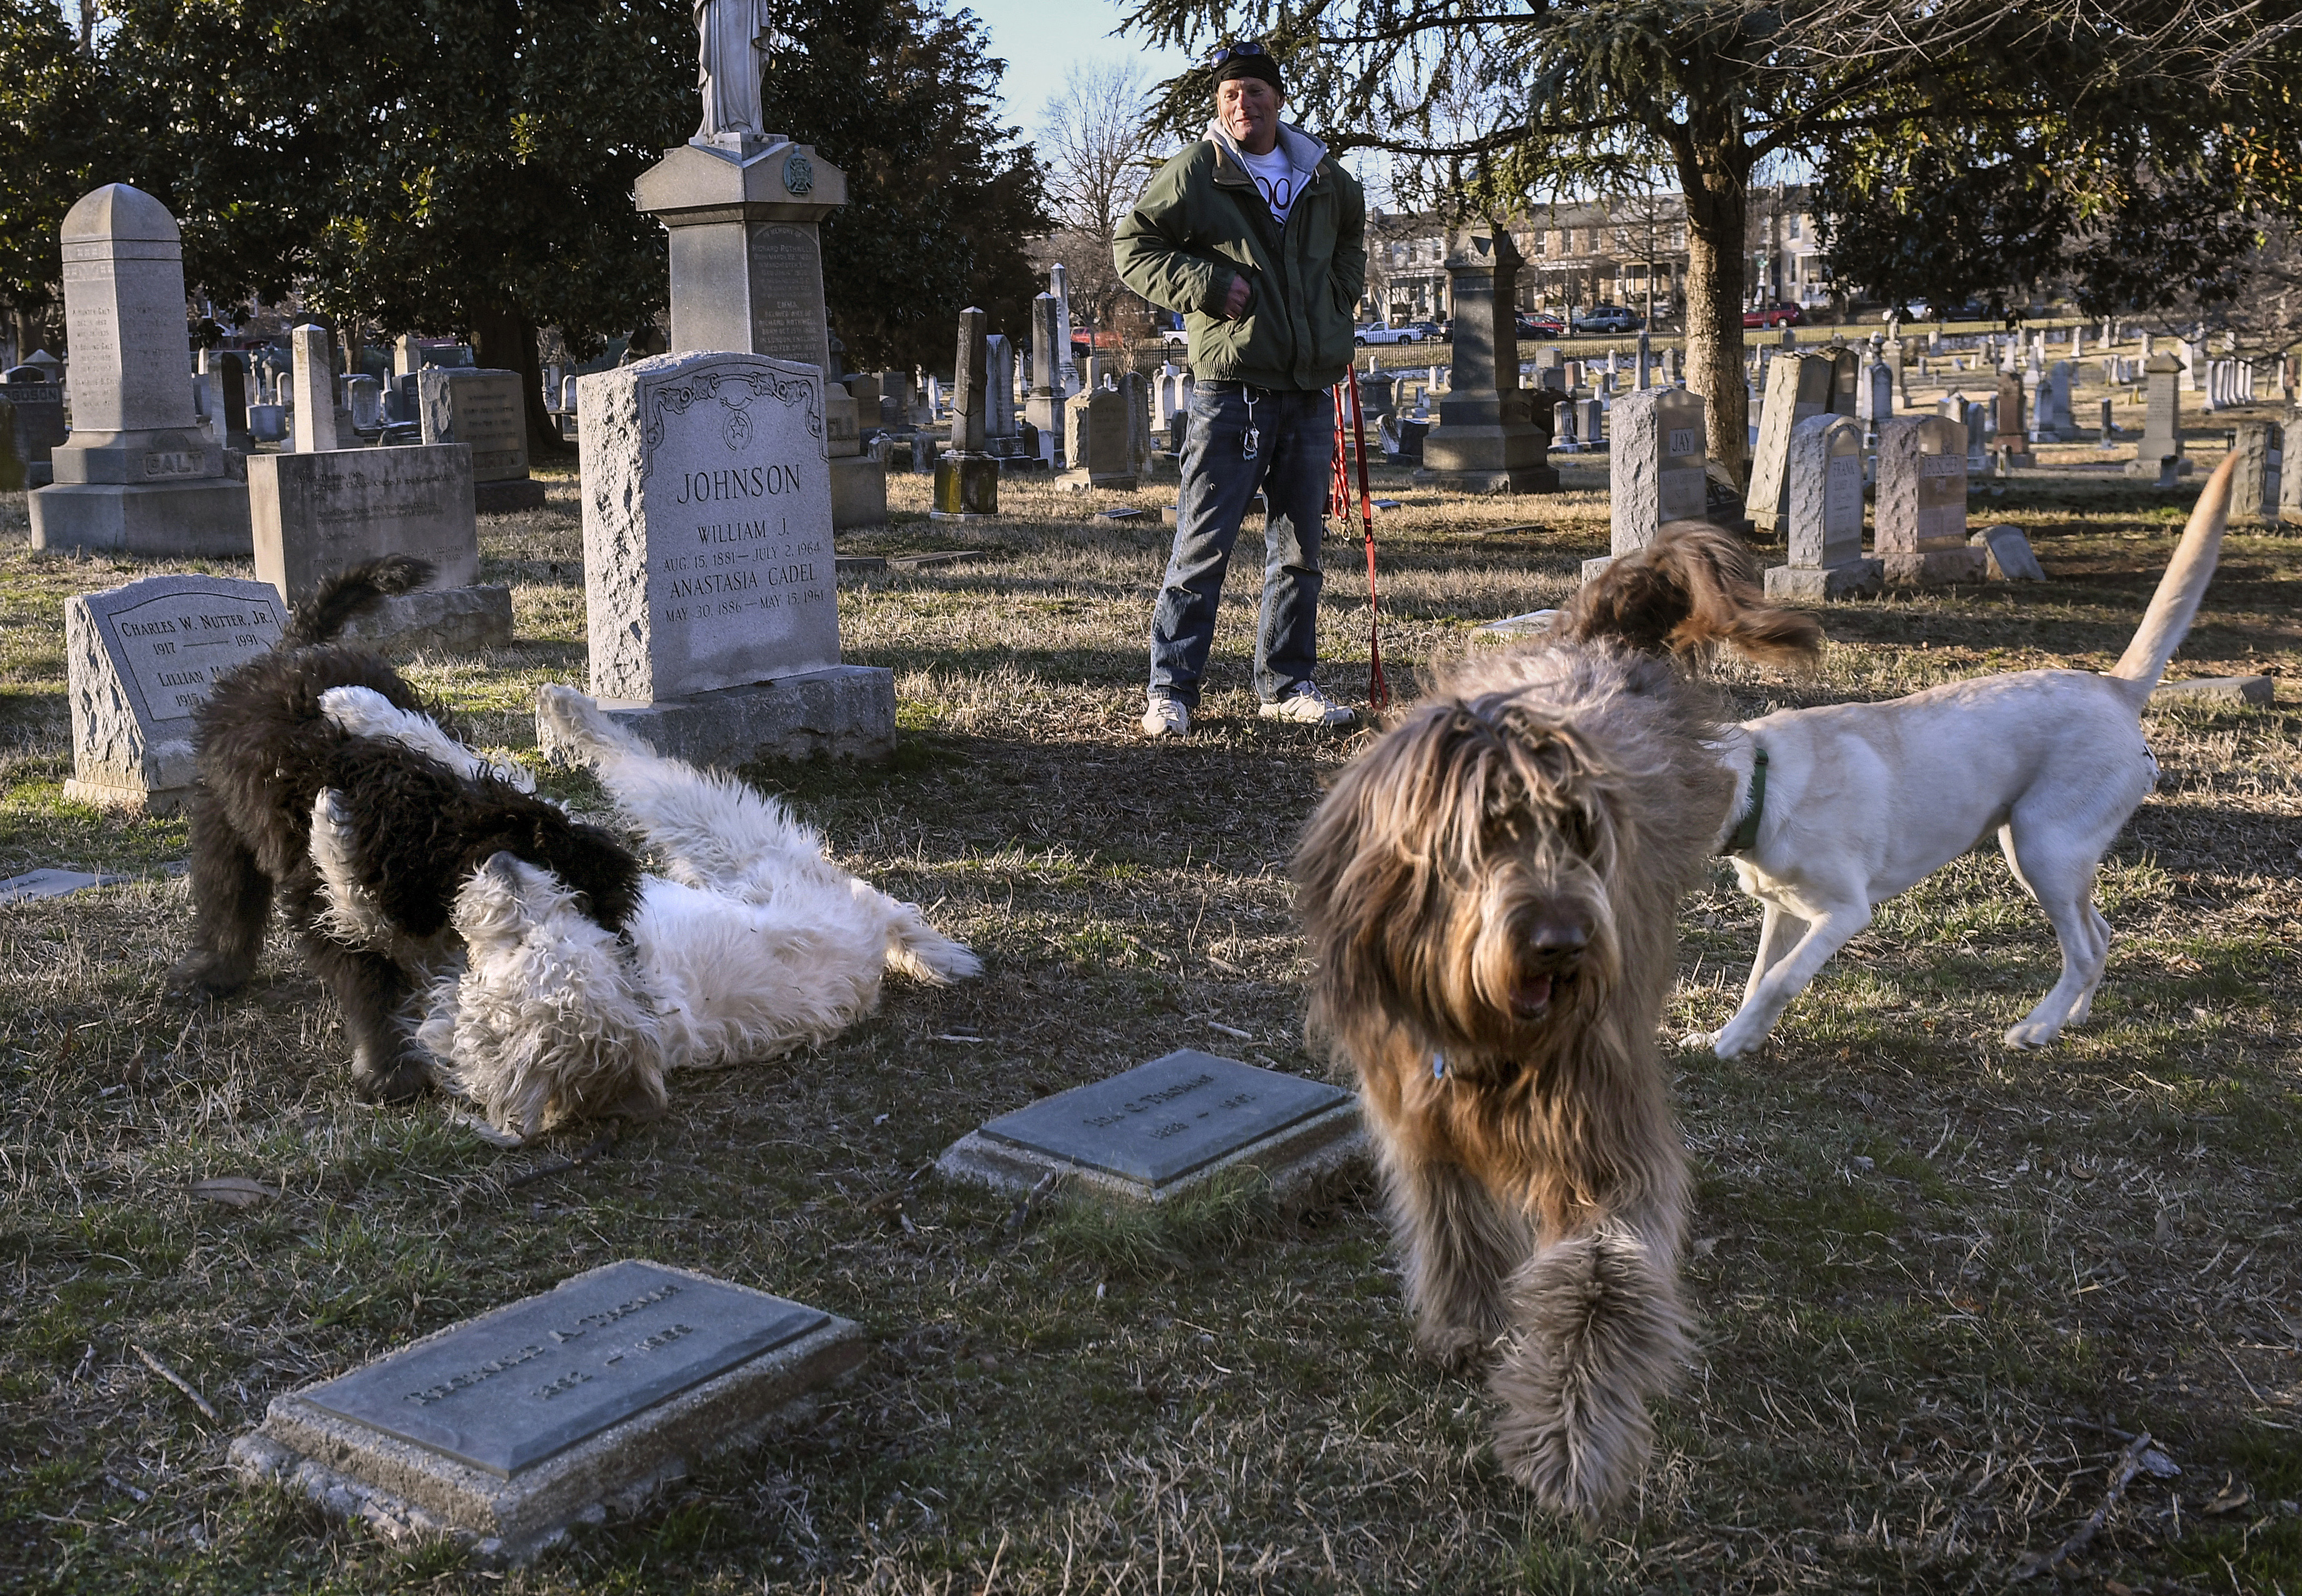 John White, at top, watches as several dogs play together in Congressional Cemetery. White checks the tags on dogs entering the grounds. Must credit: Washington Post photo by Toni L. Sandys